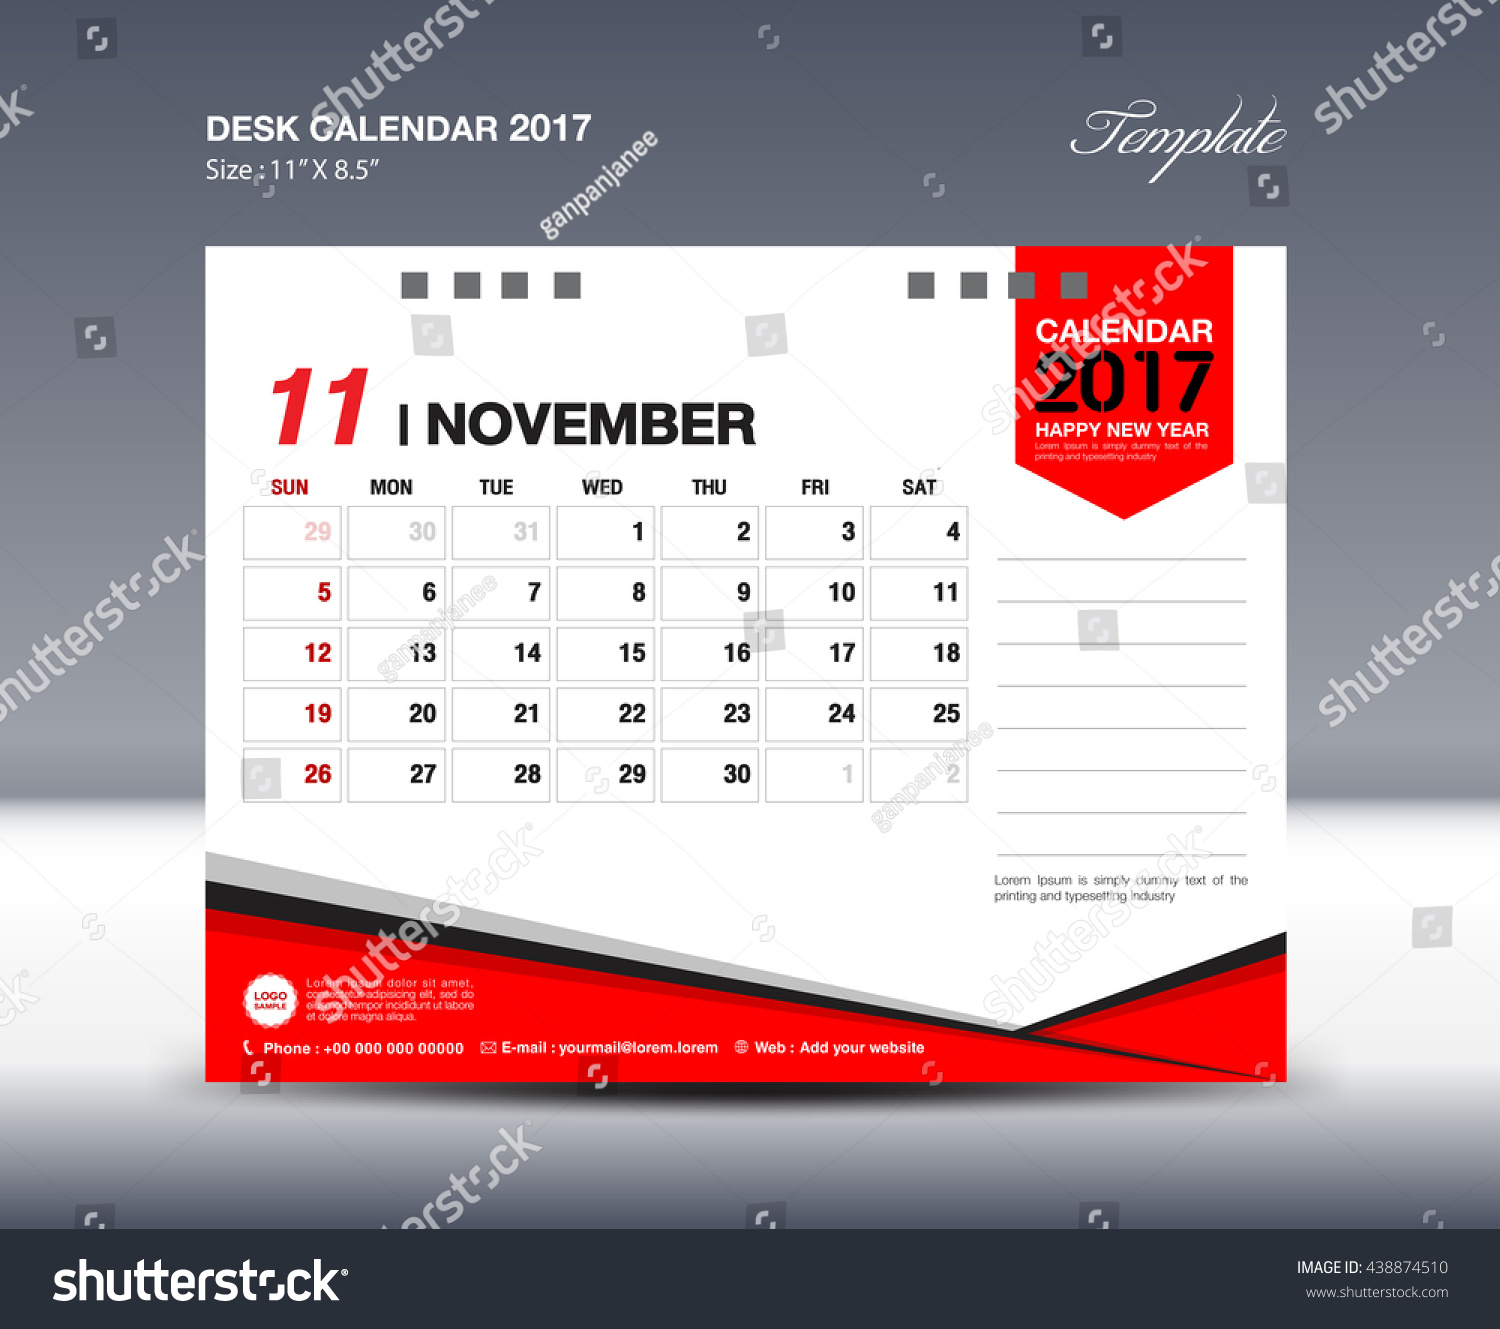 November Calendar Design : November desk calendar design template stock vector